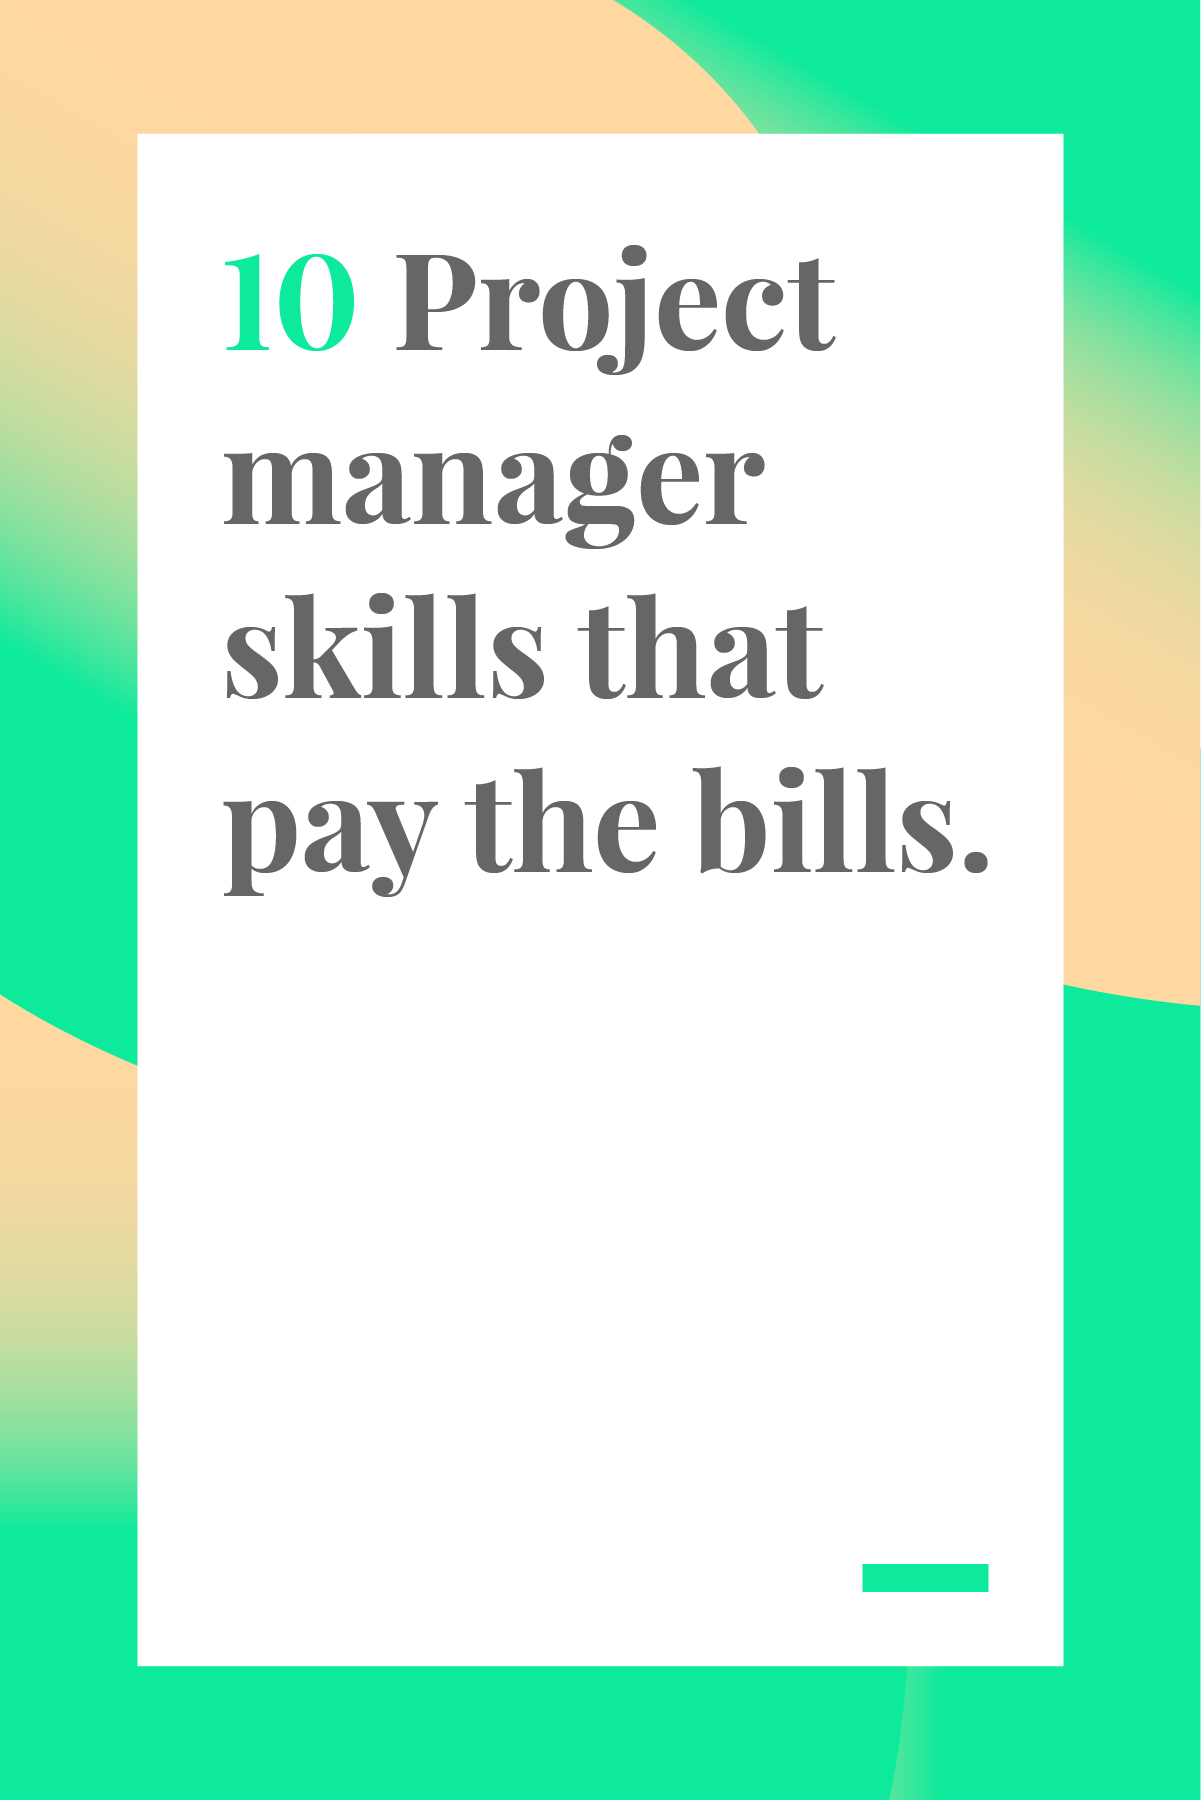 These 10 skills are key for any project manager. Master them, and you'll be on your way to project management success. #projectmanagement